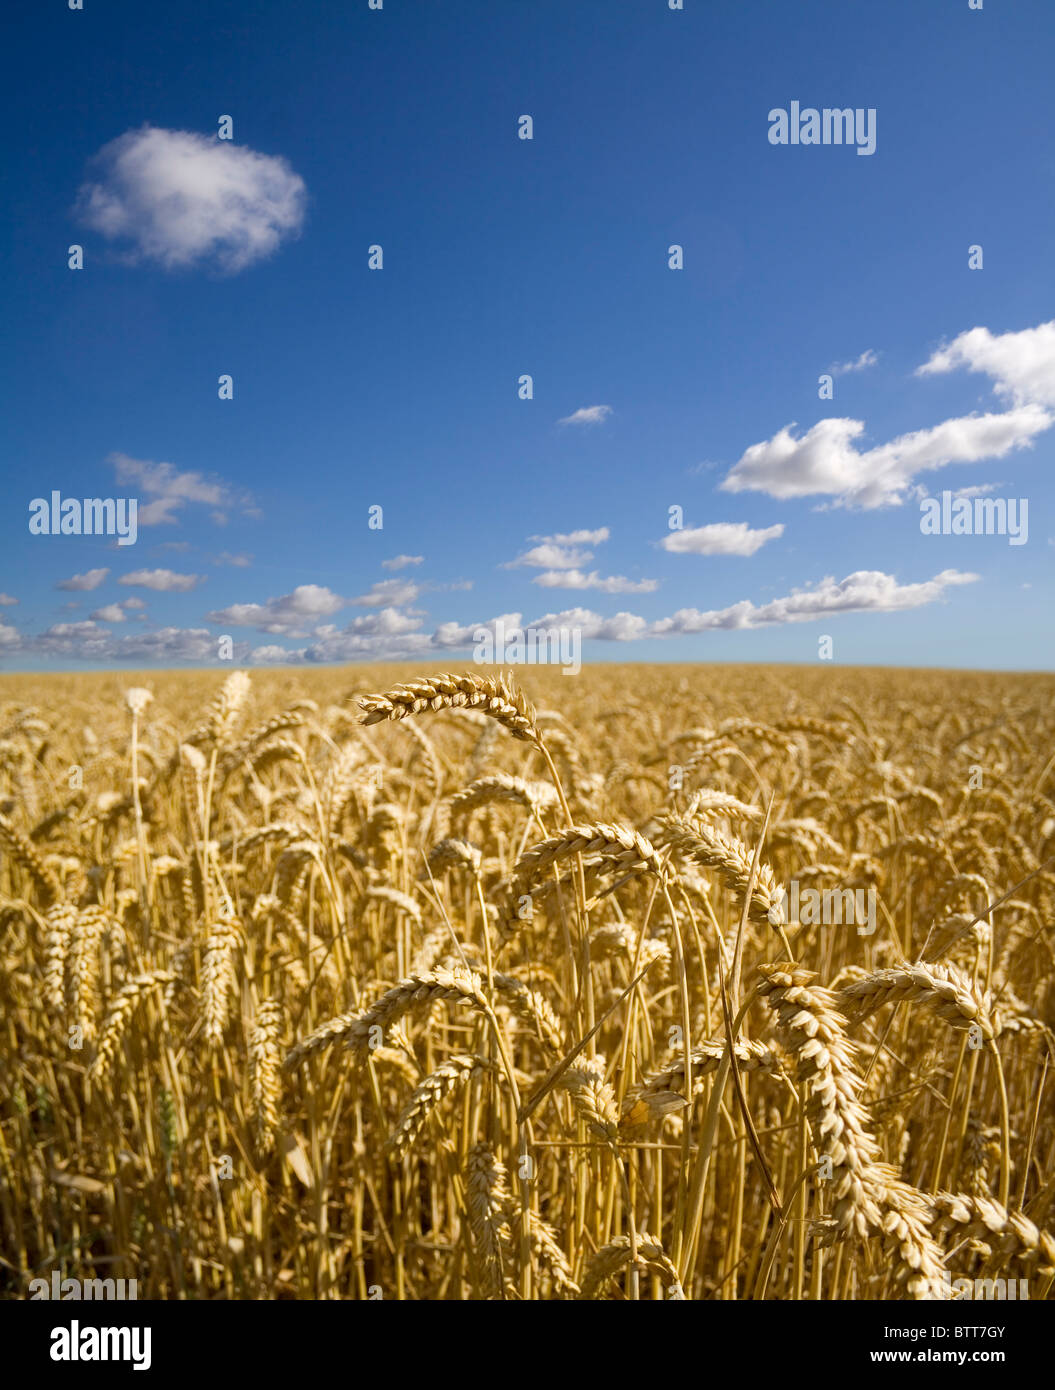 A field of ripening summer wheat beneath a clear blue sky. - Stock Image